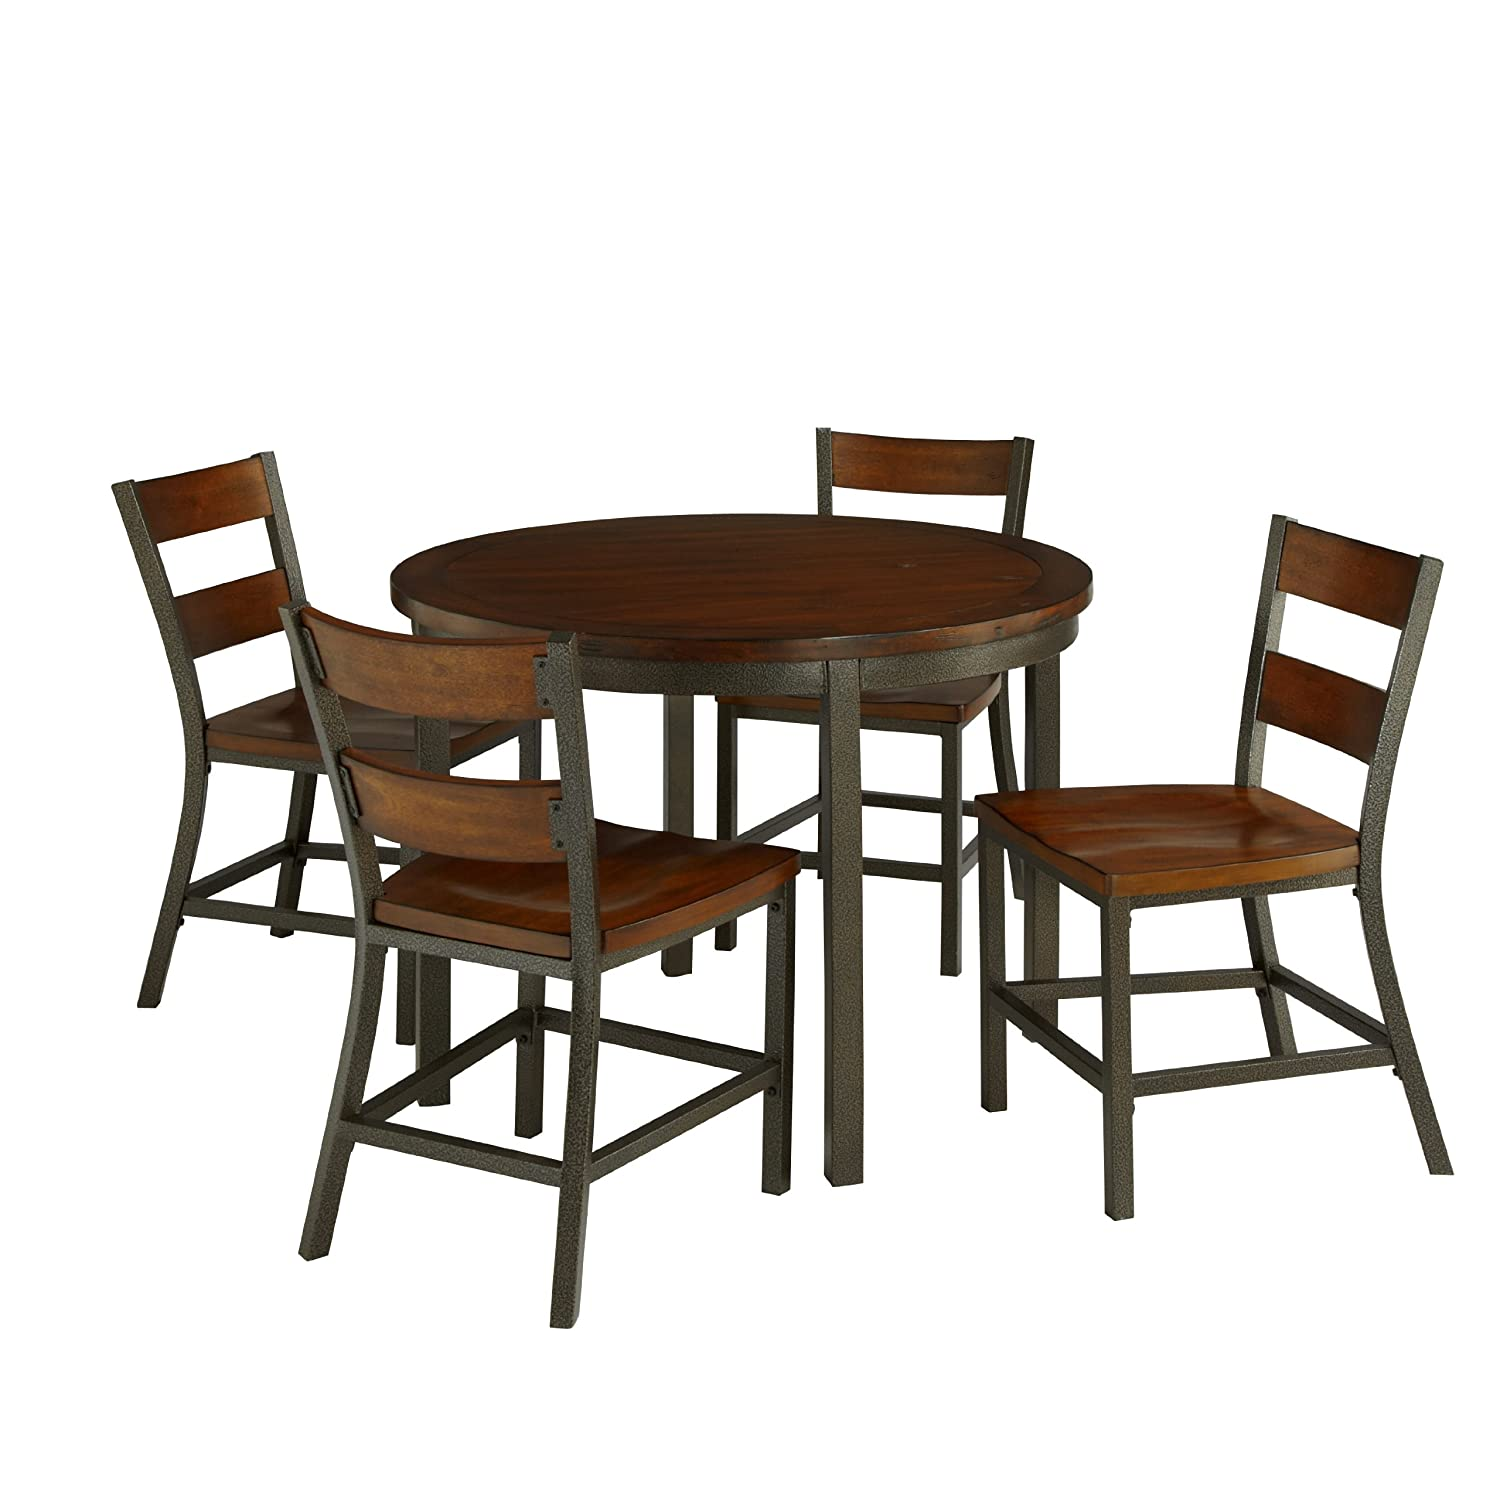 amazon com home styles 5411 308 cabin creek 5 piece dining set amazon com home styles 5411 308 cabin creek 5 piece dining set table chair sets